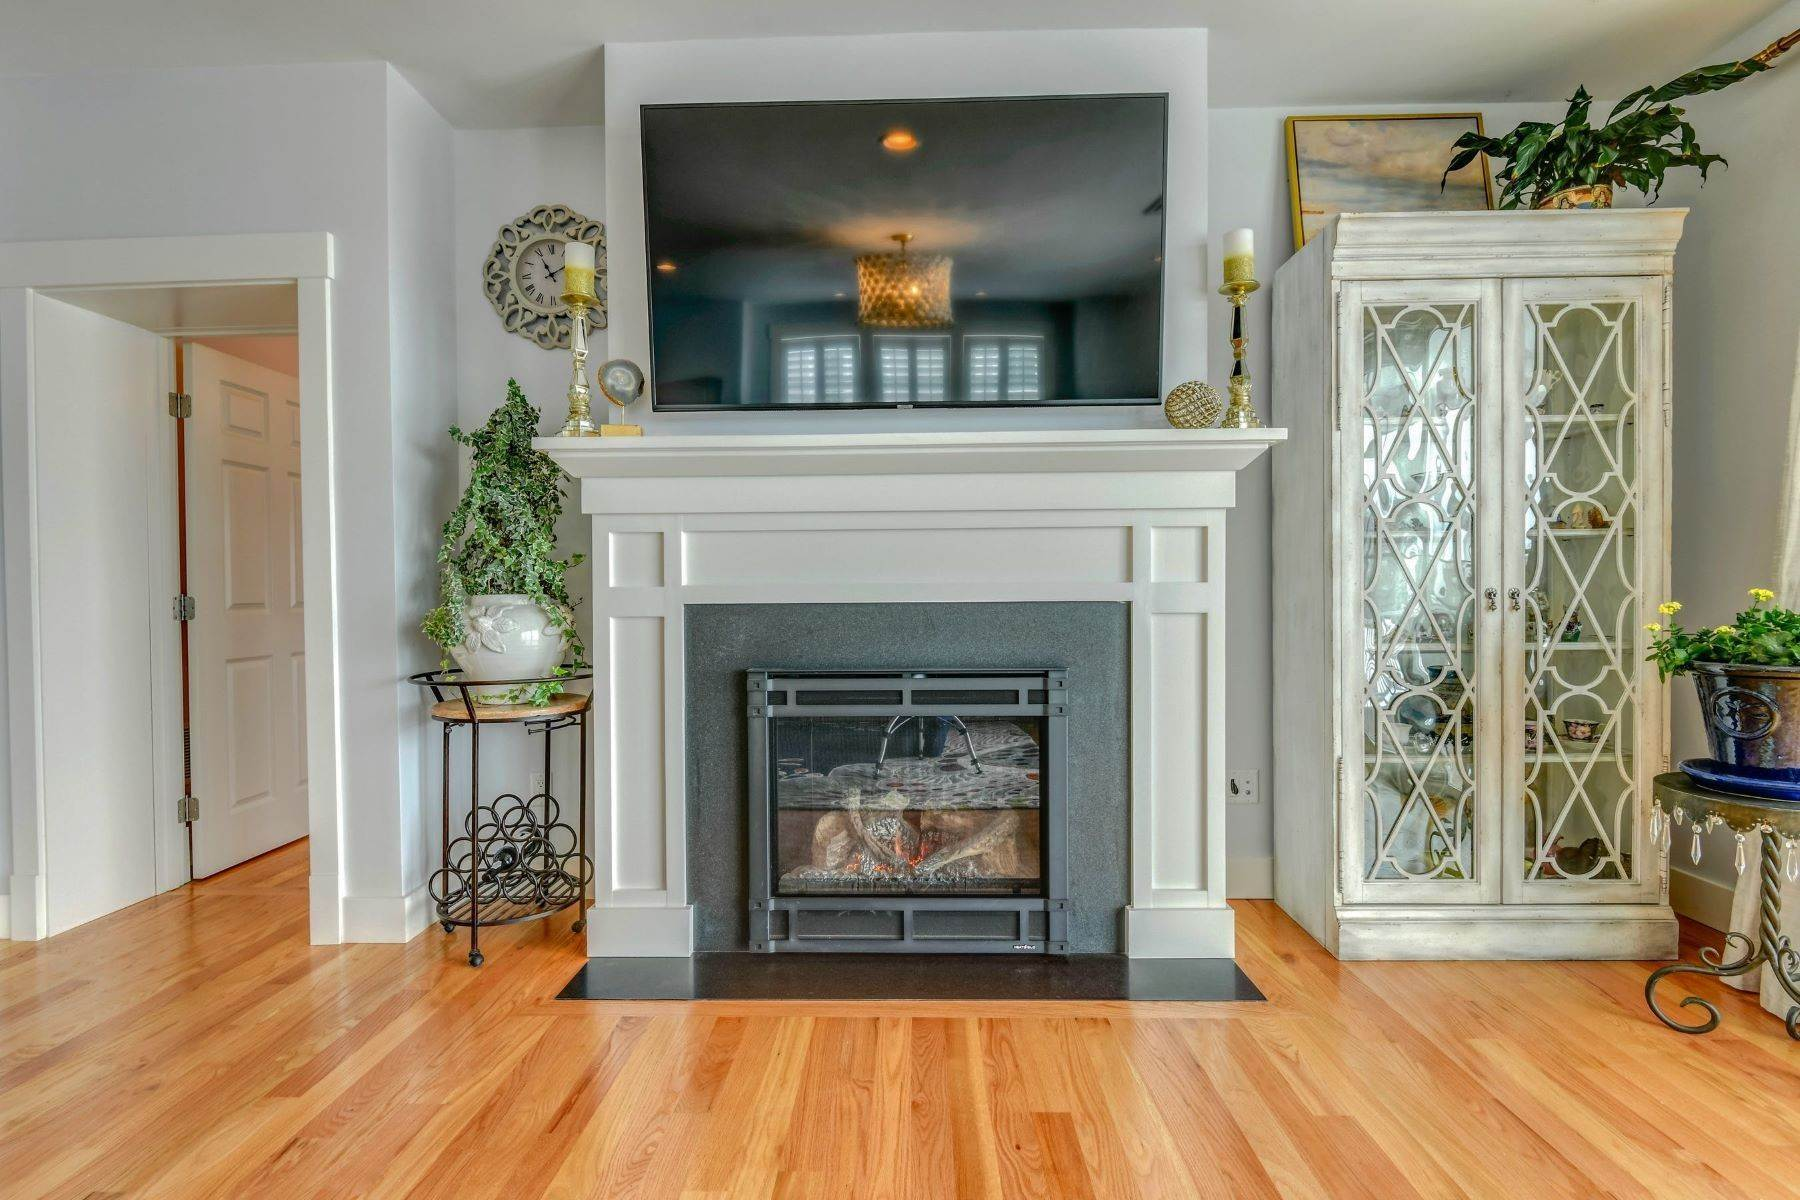 20. Condominiums for Sale at Immaculate Townhome at The Villages 41 Yardarm Drive Tiverton, Rhode Island 02878 United States